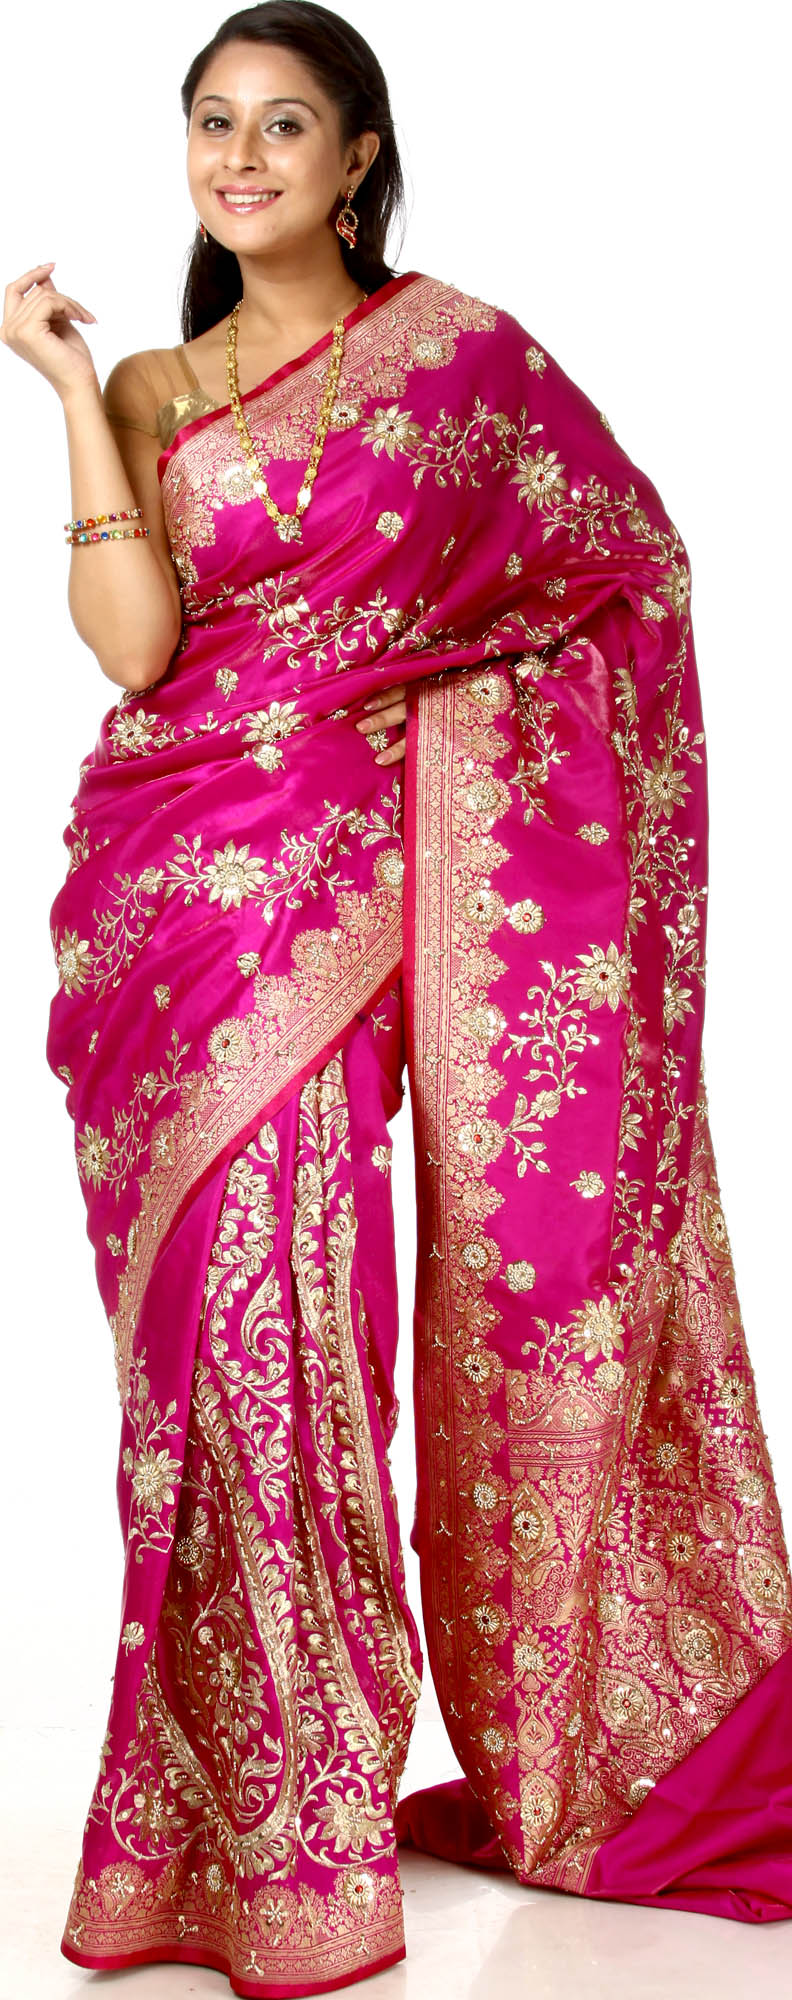 Magenta banarasi satin sari with woven paisleys and